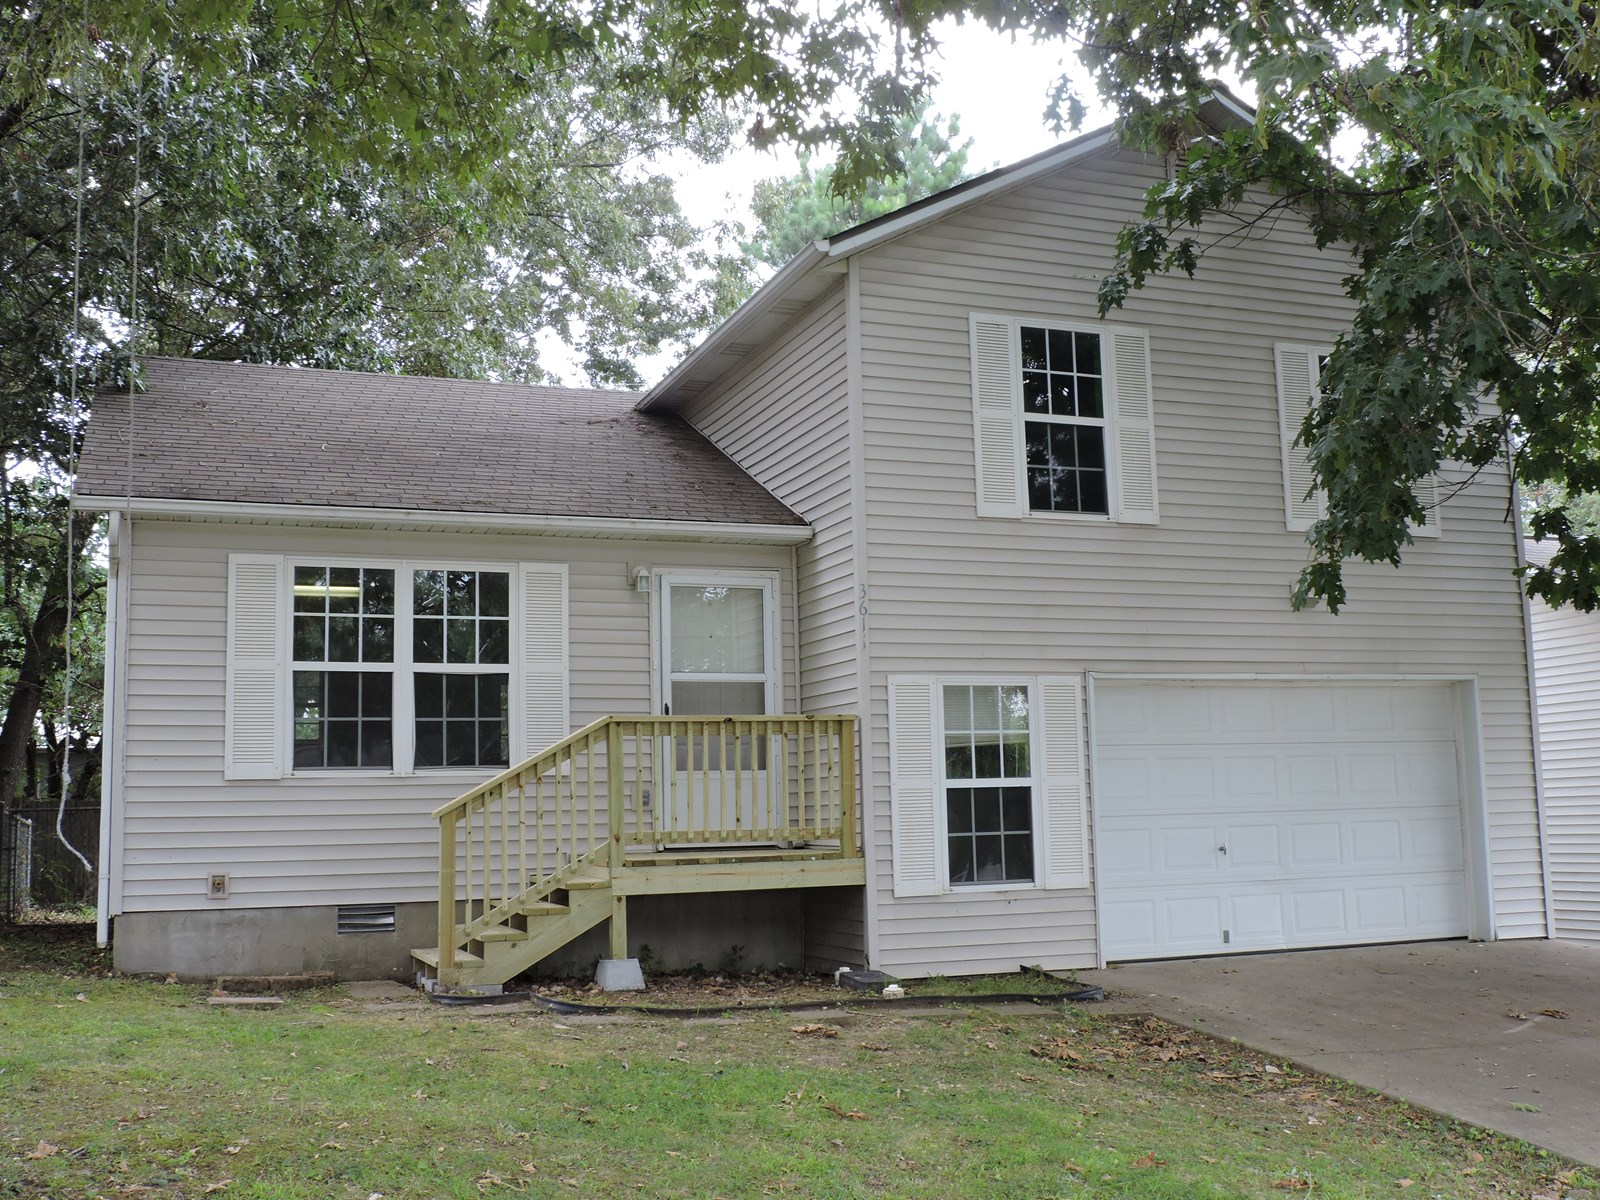 House For Sale In Town Harrison, Arkansas Near Airport